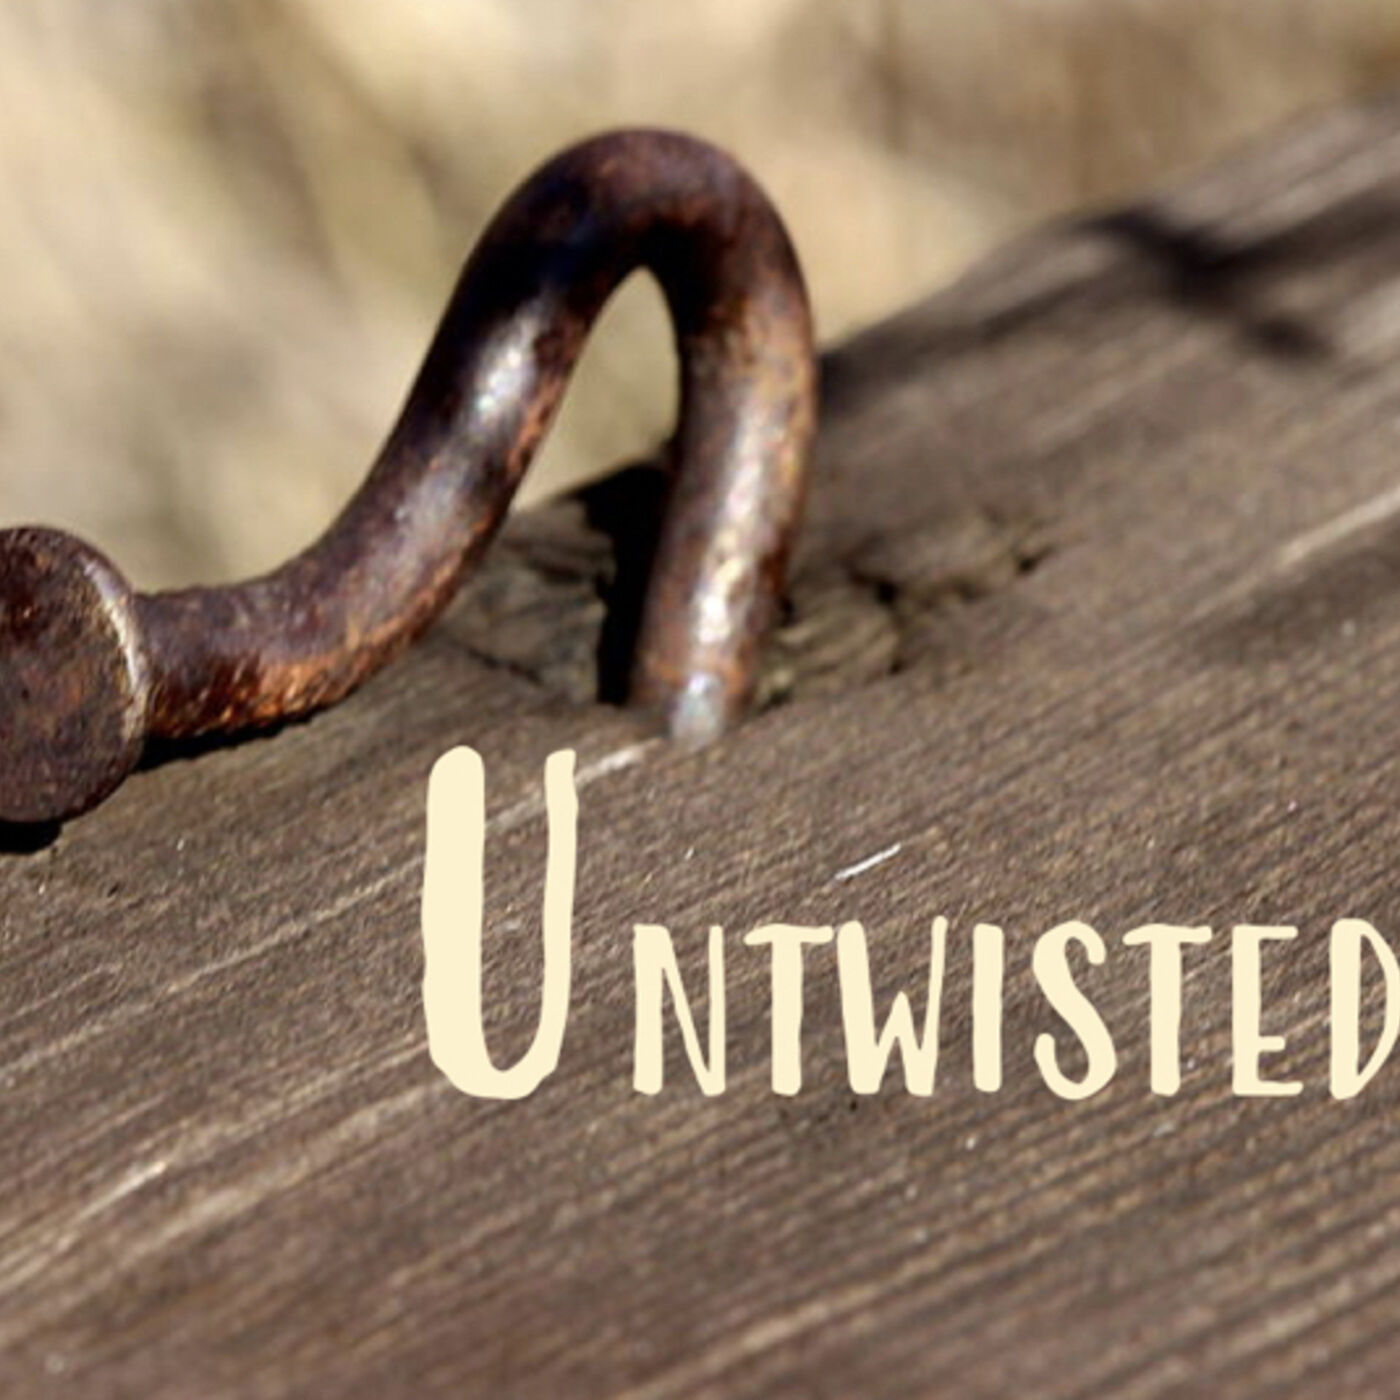 Untwisted: Love